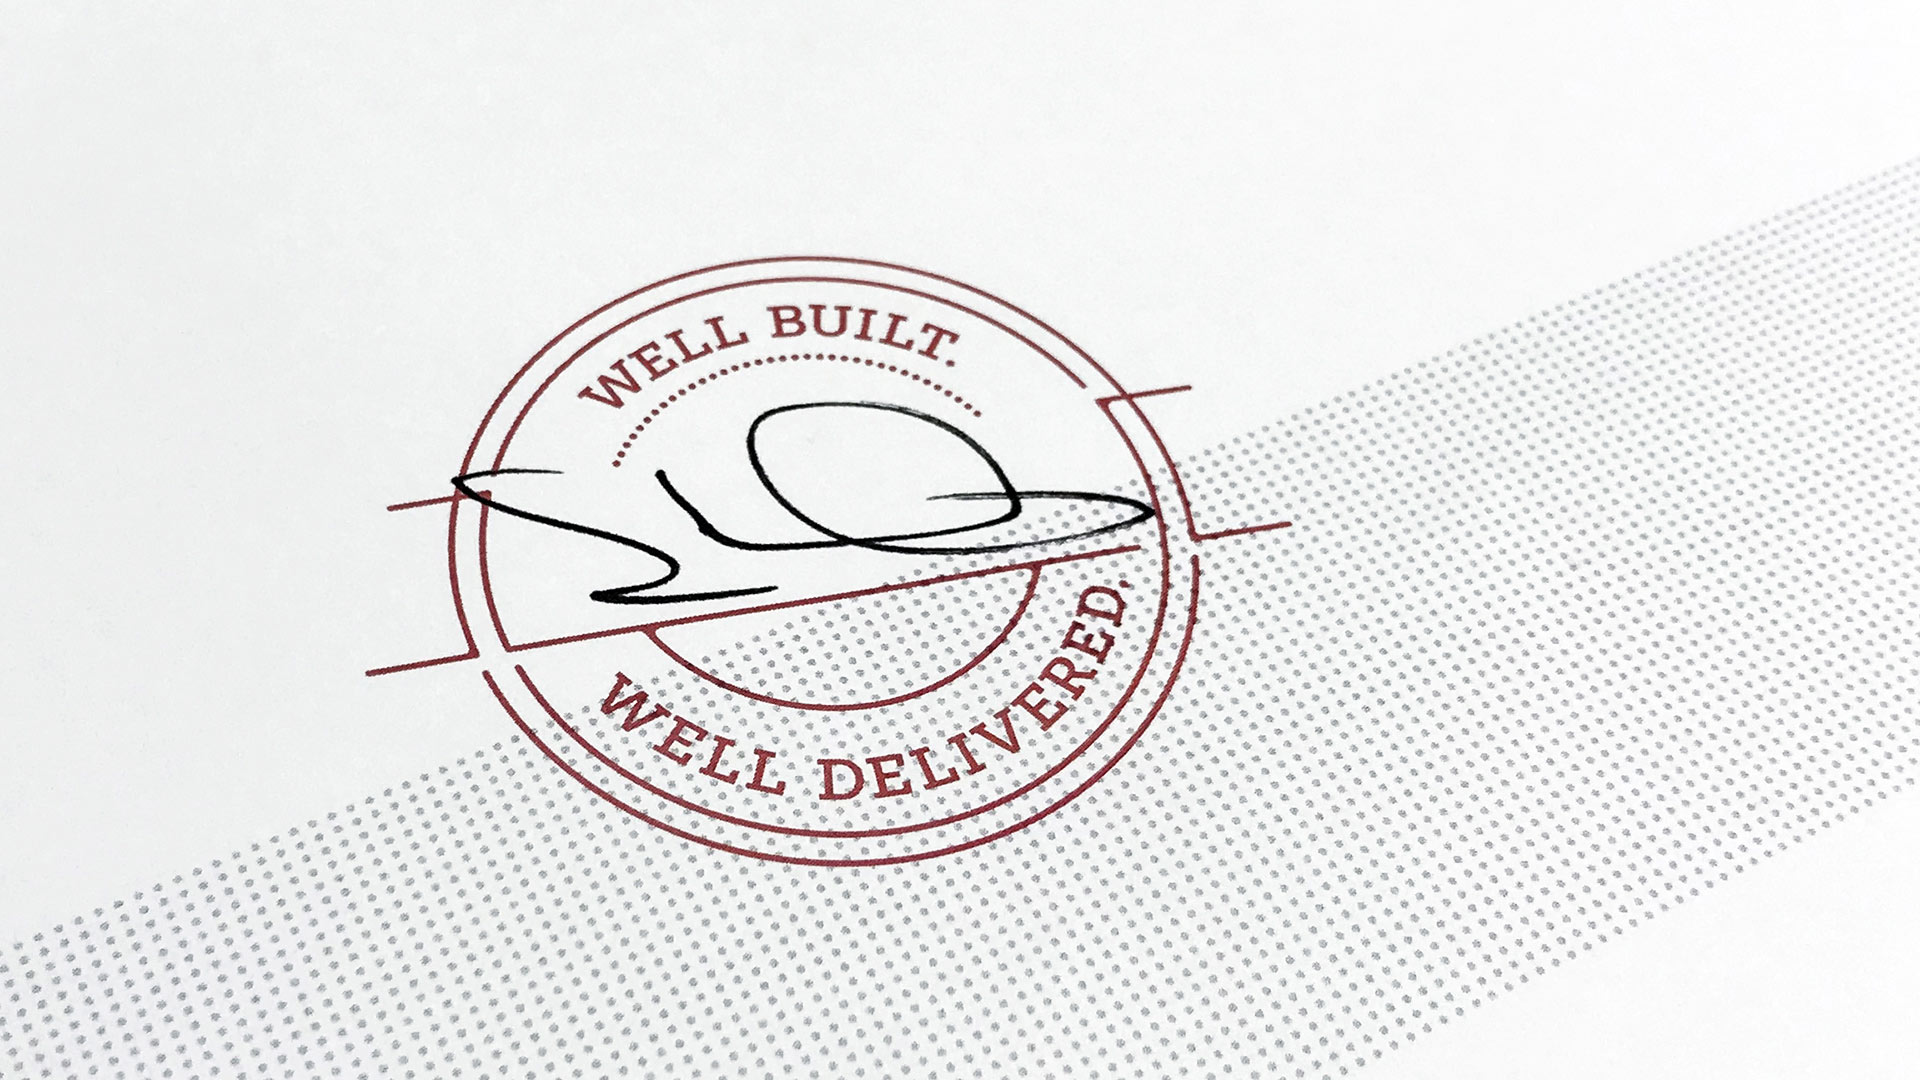 Hart Well Built Well Delivered Stamp